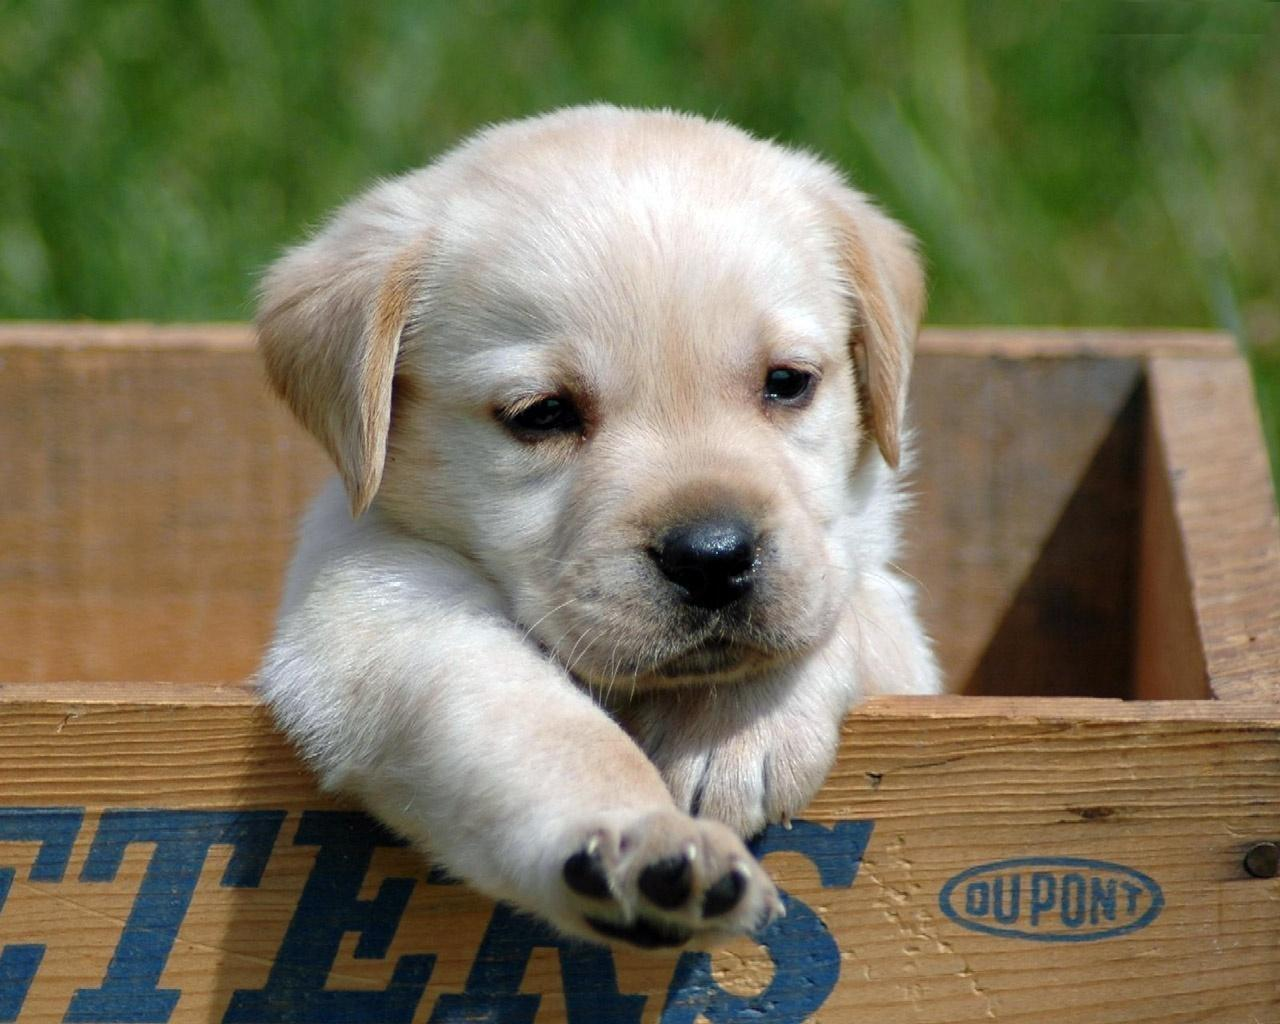 Pictures Of Puppies in a Box 248.74 Kb